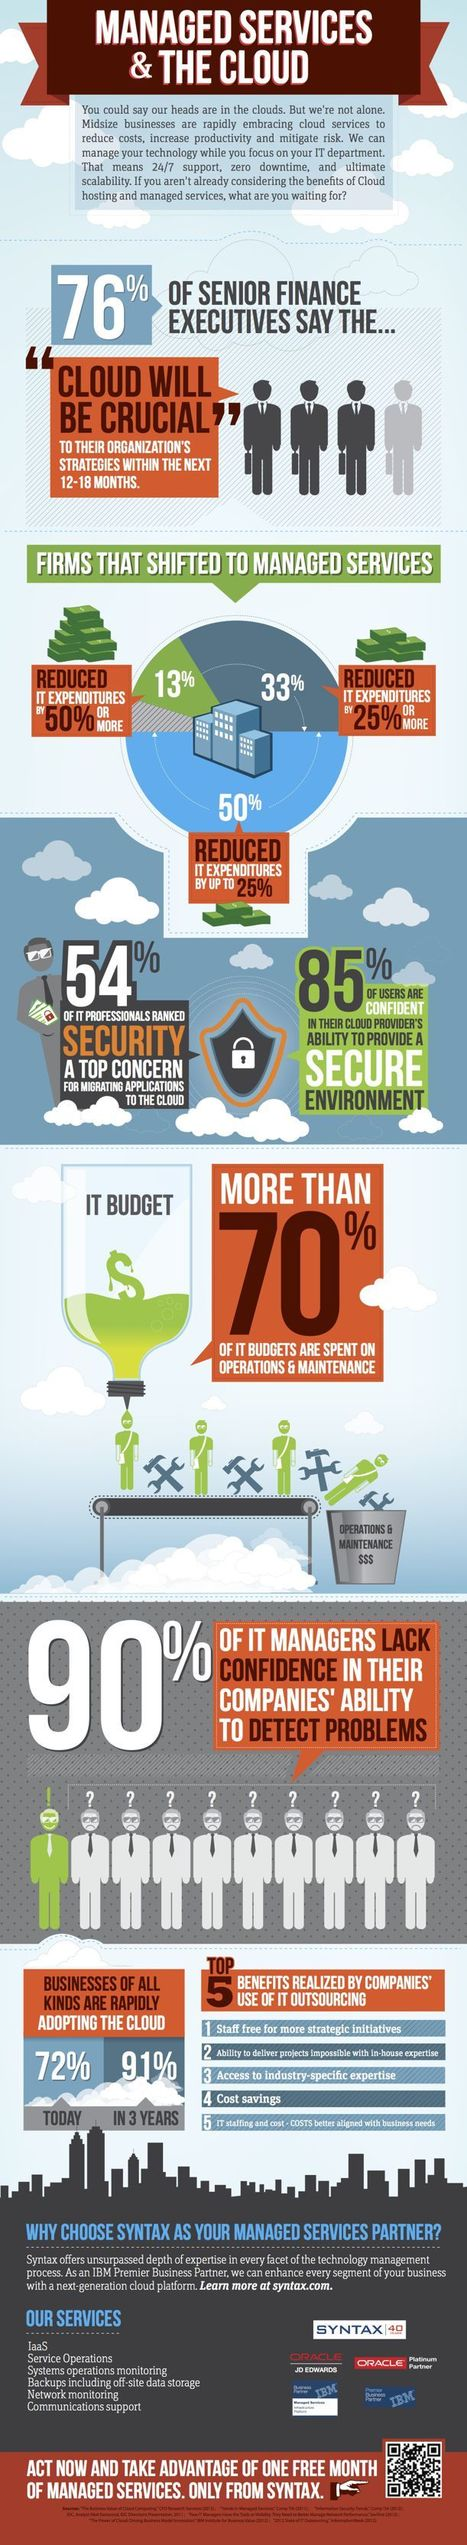 INFOGRAPHIC: Managed Services & The Cloud | Future of Cloud Computing and IoT | Scoop.it